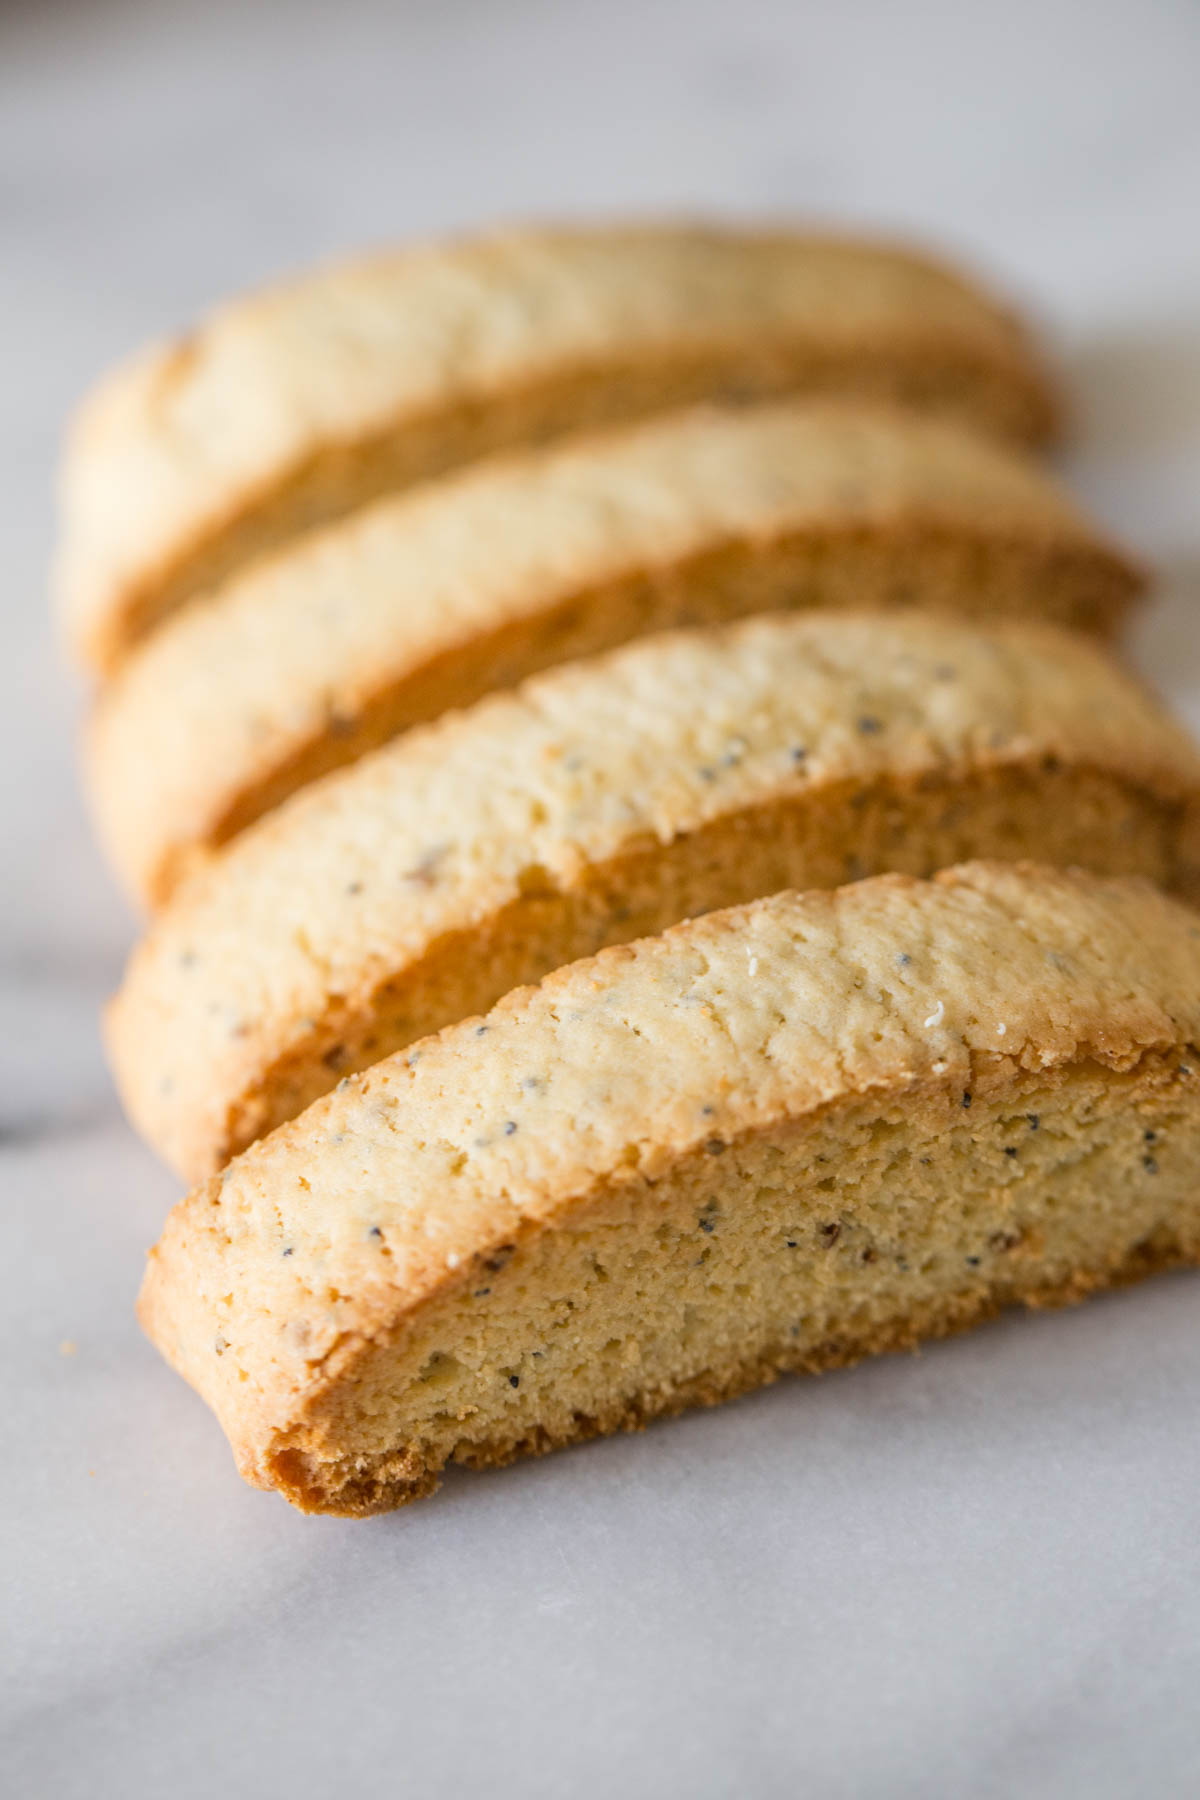 Four Almond Poppy Seed Biscotti slices without the white chocolate dip.